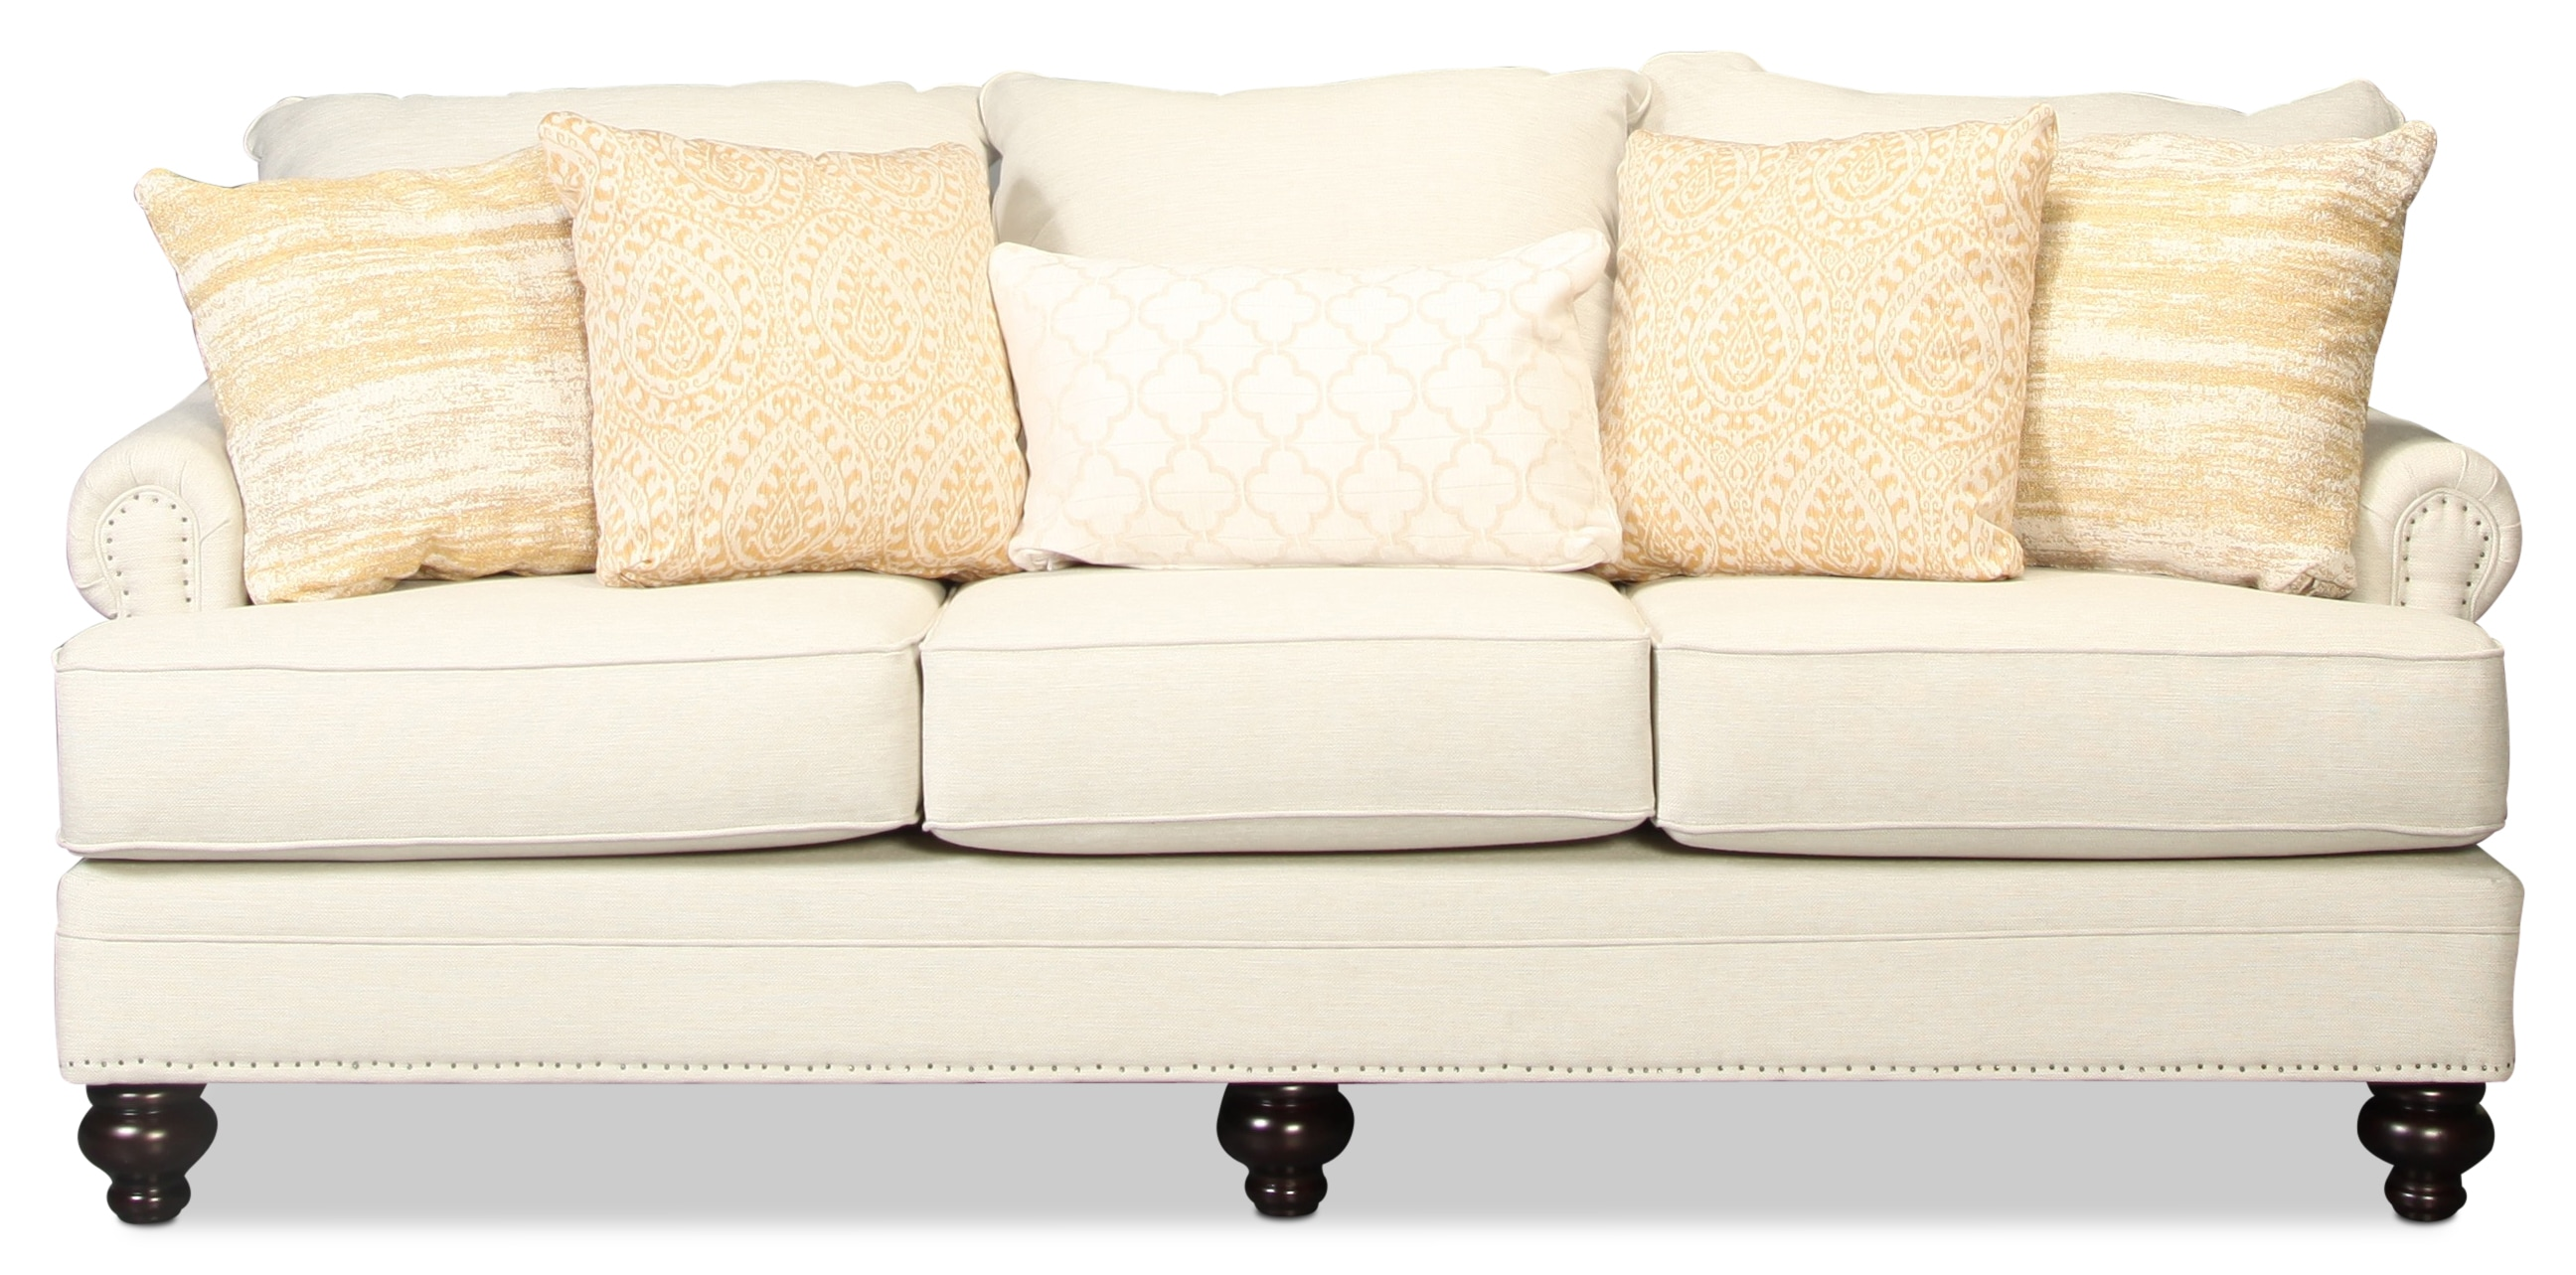 The Montecito Sofa